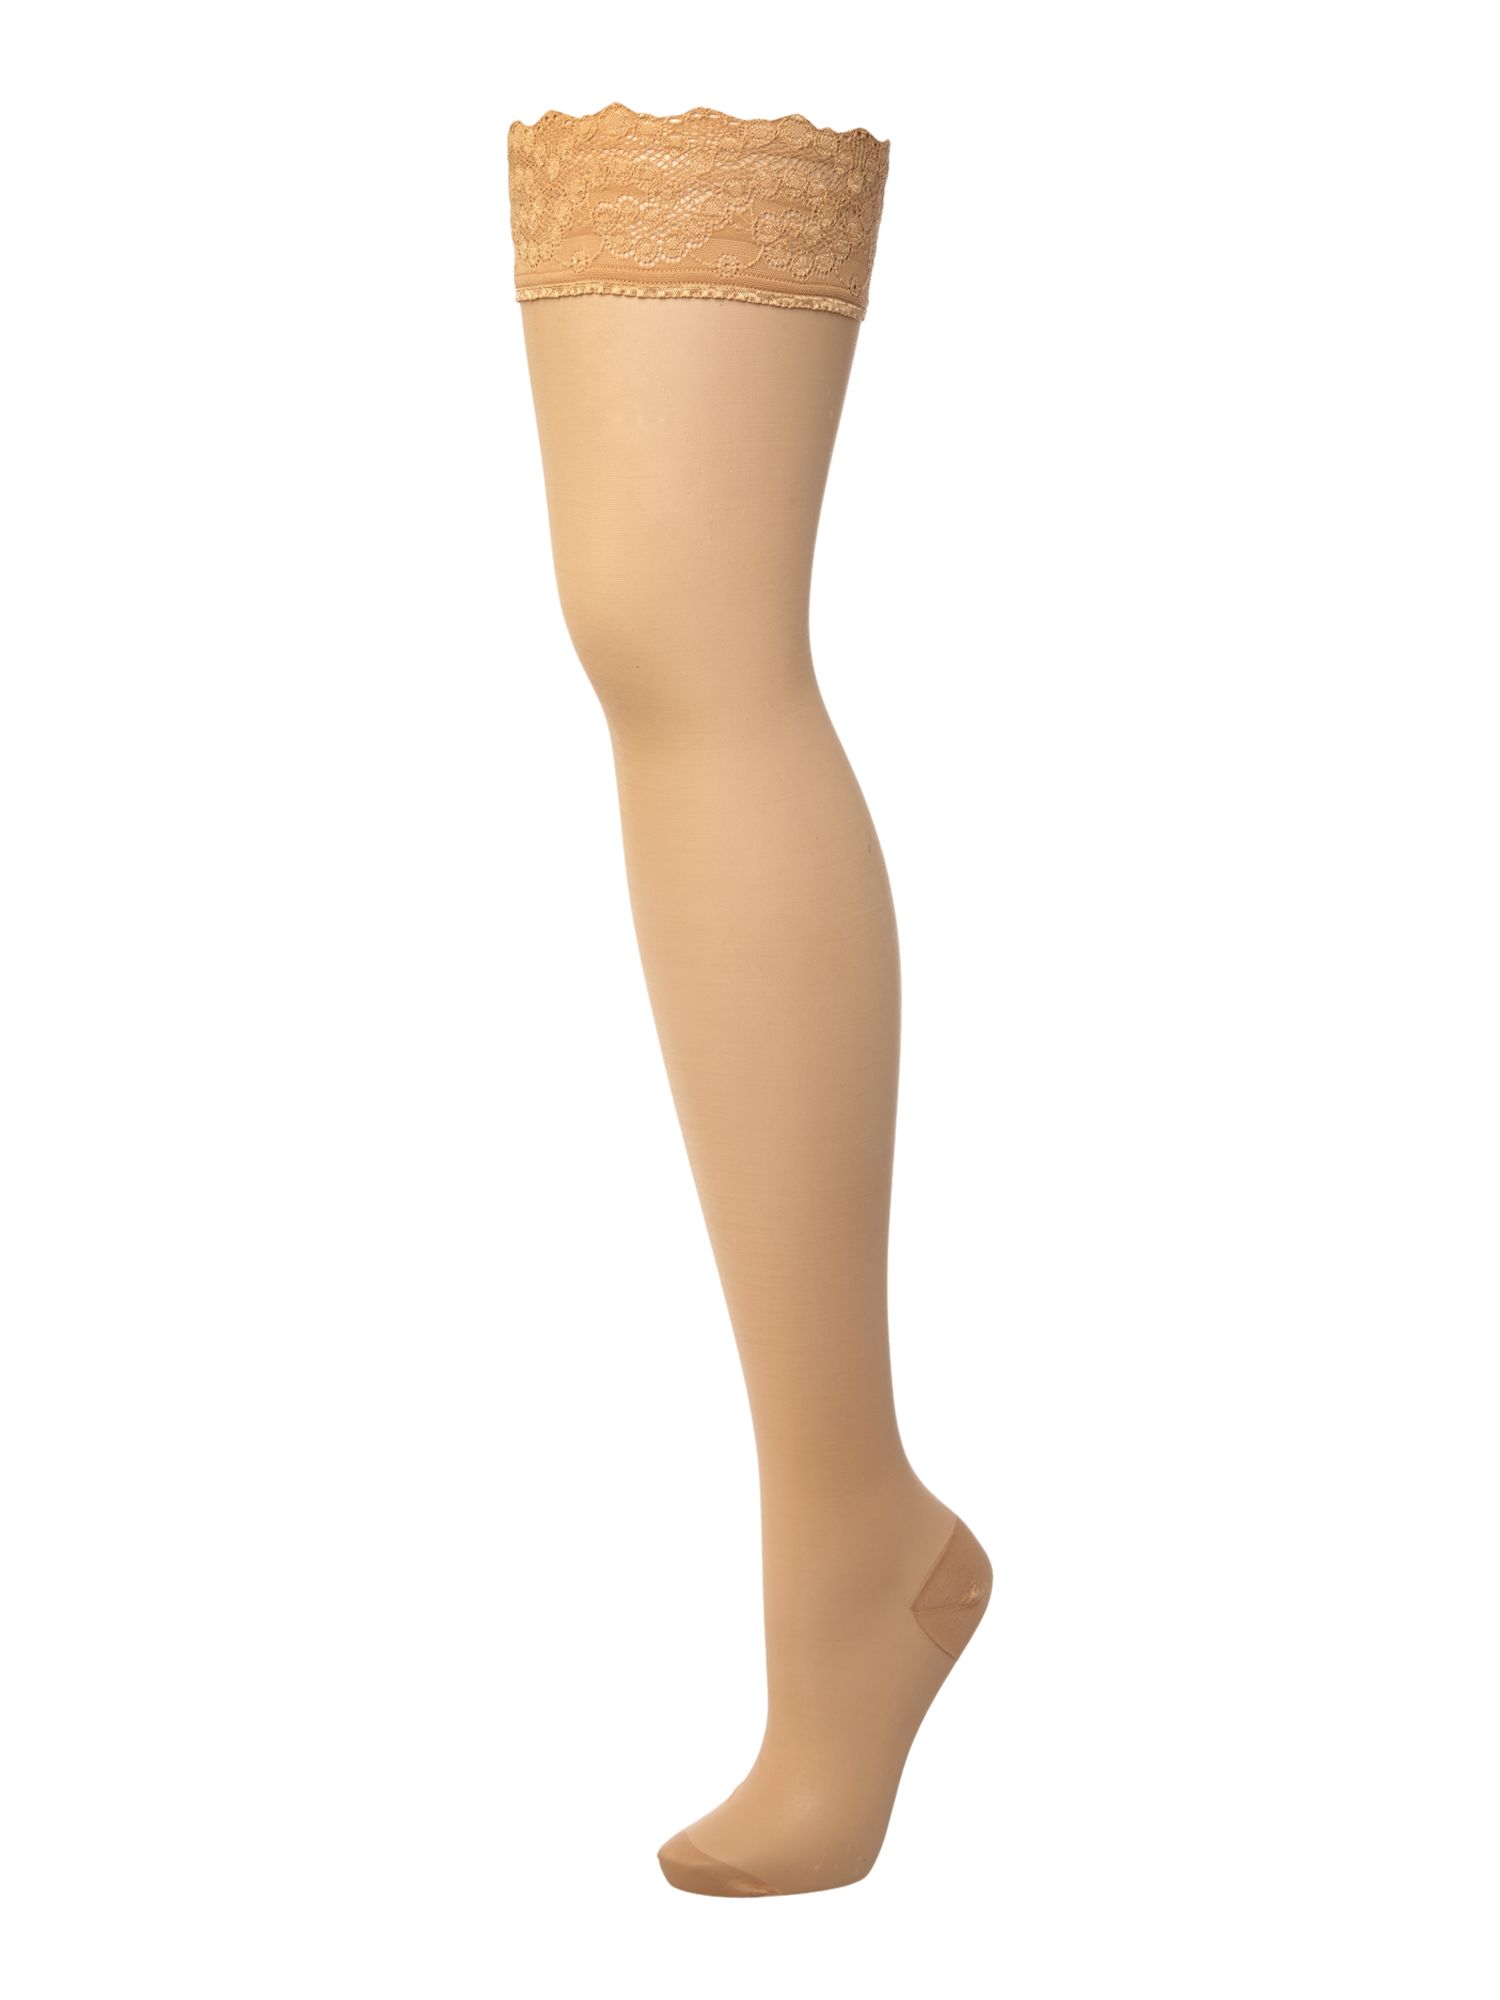 Wolford Miss W leg support 30 denier hold ups Gobi